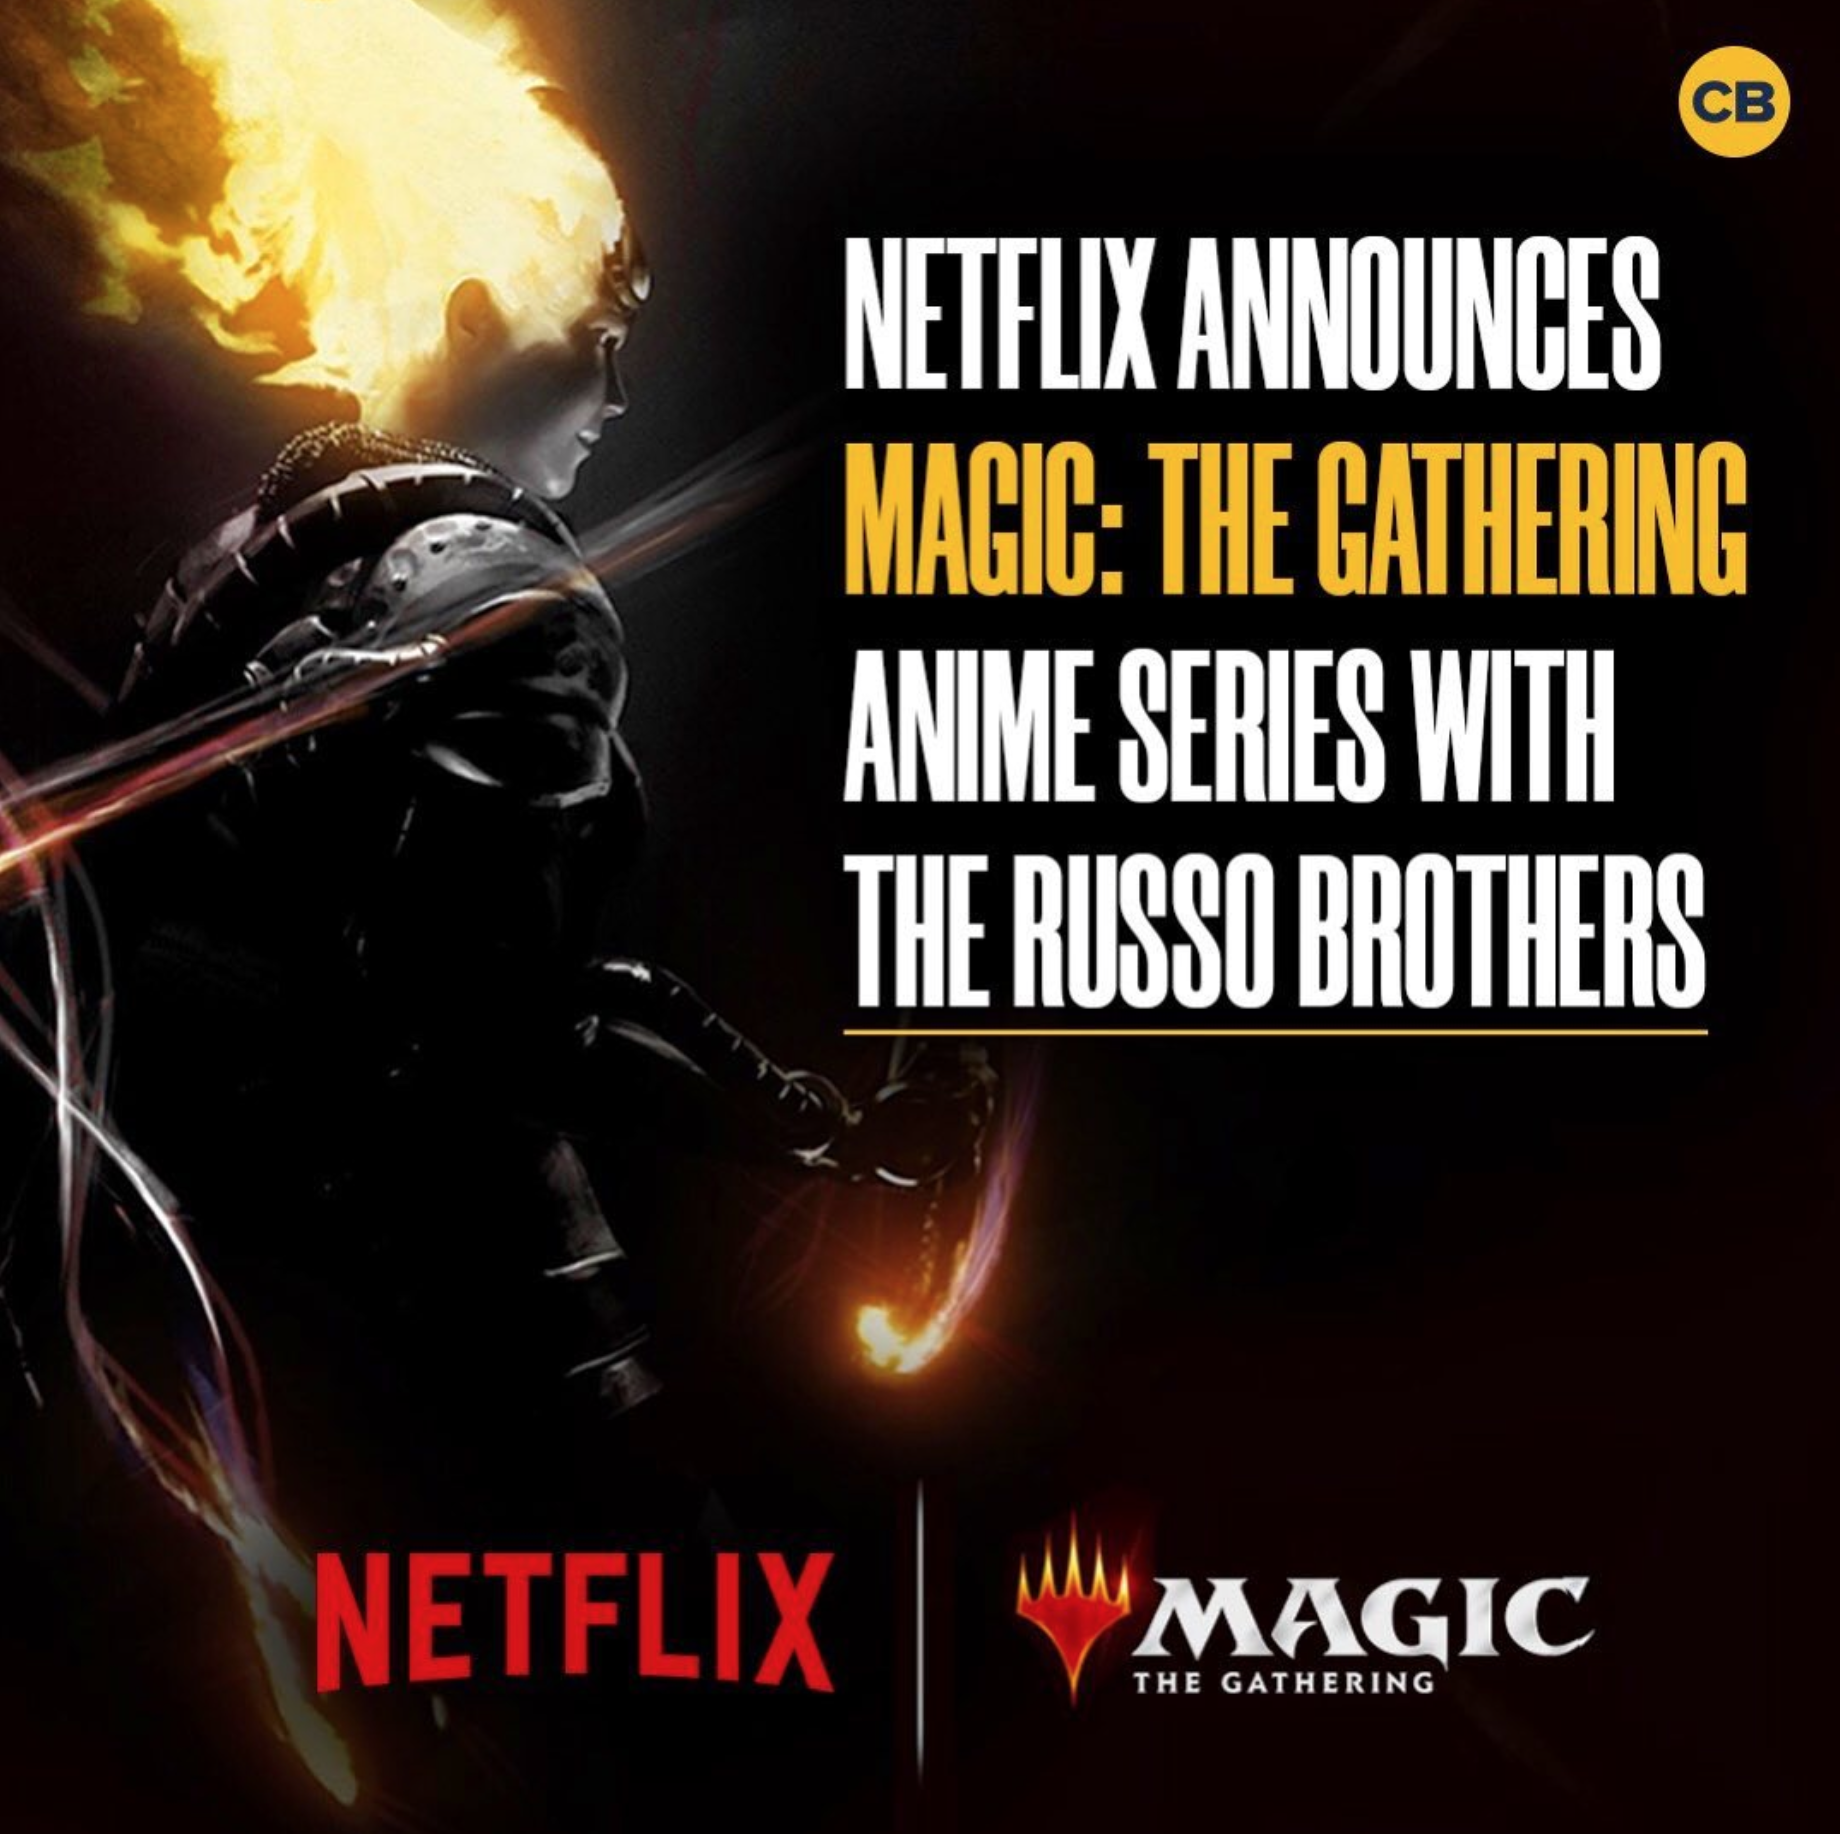 Netflix Announces Magic The Gathering Anime Series with